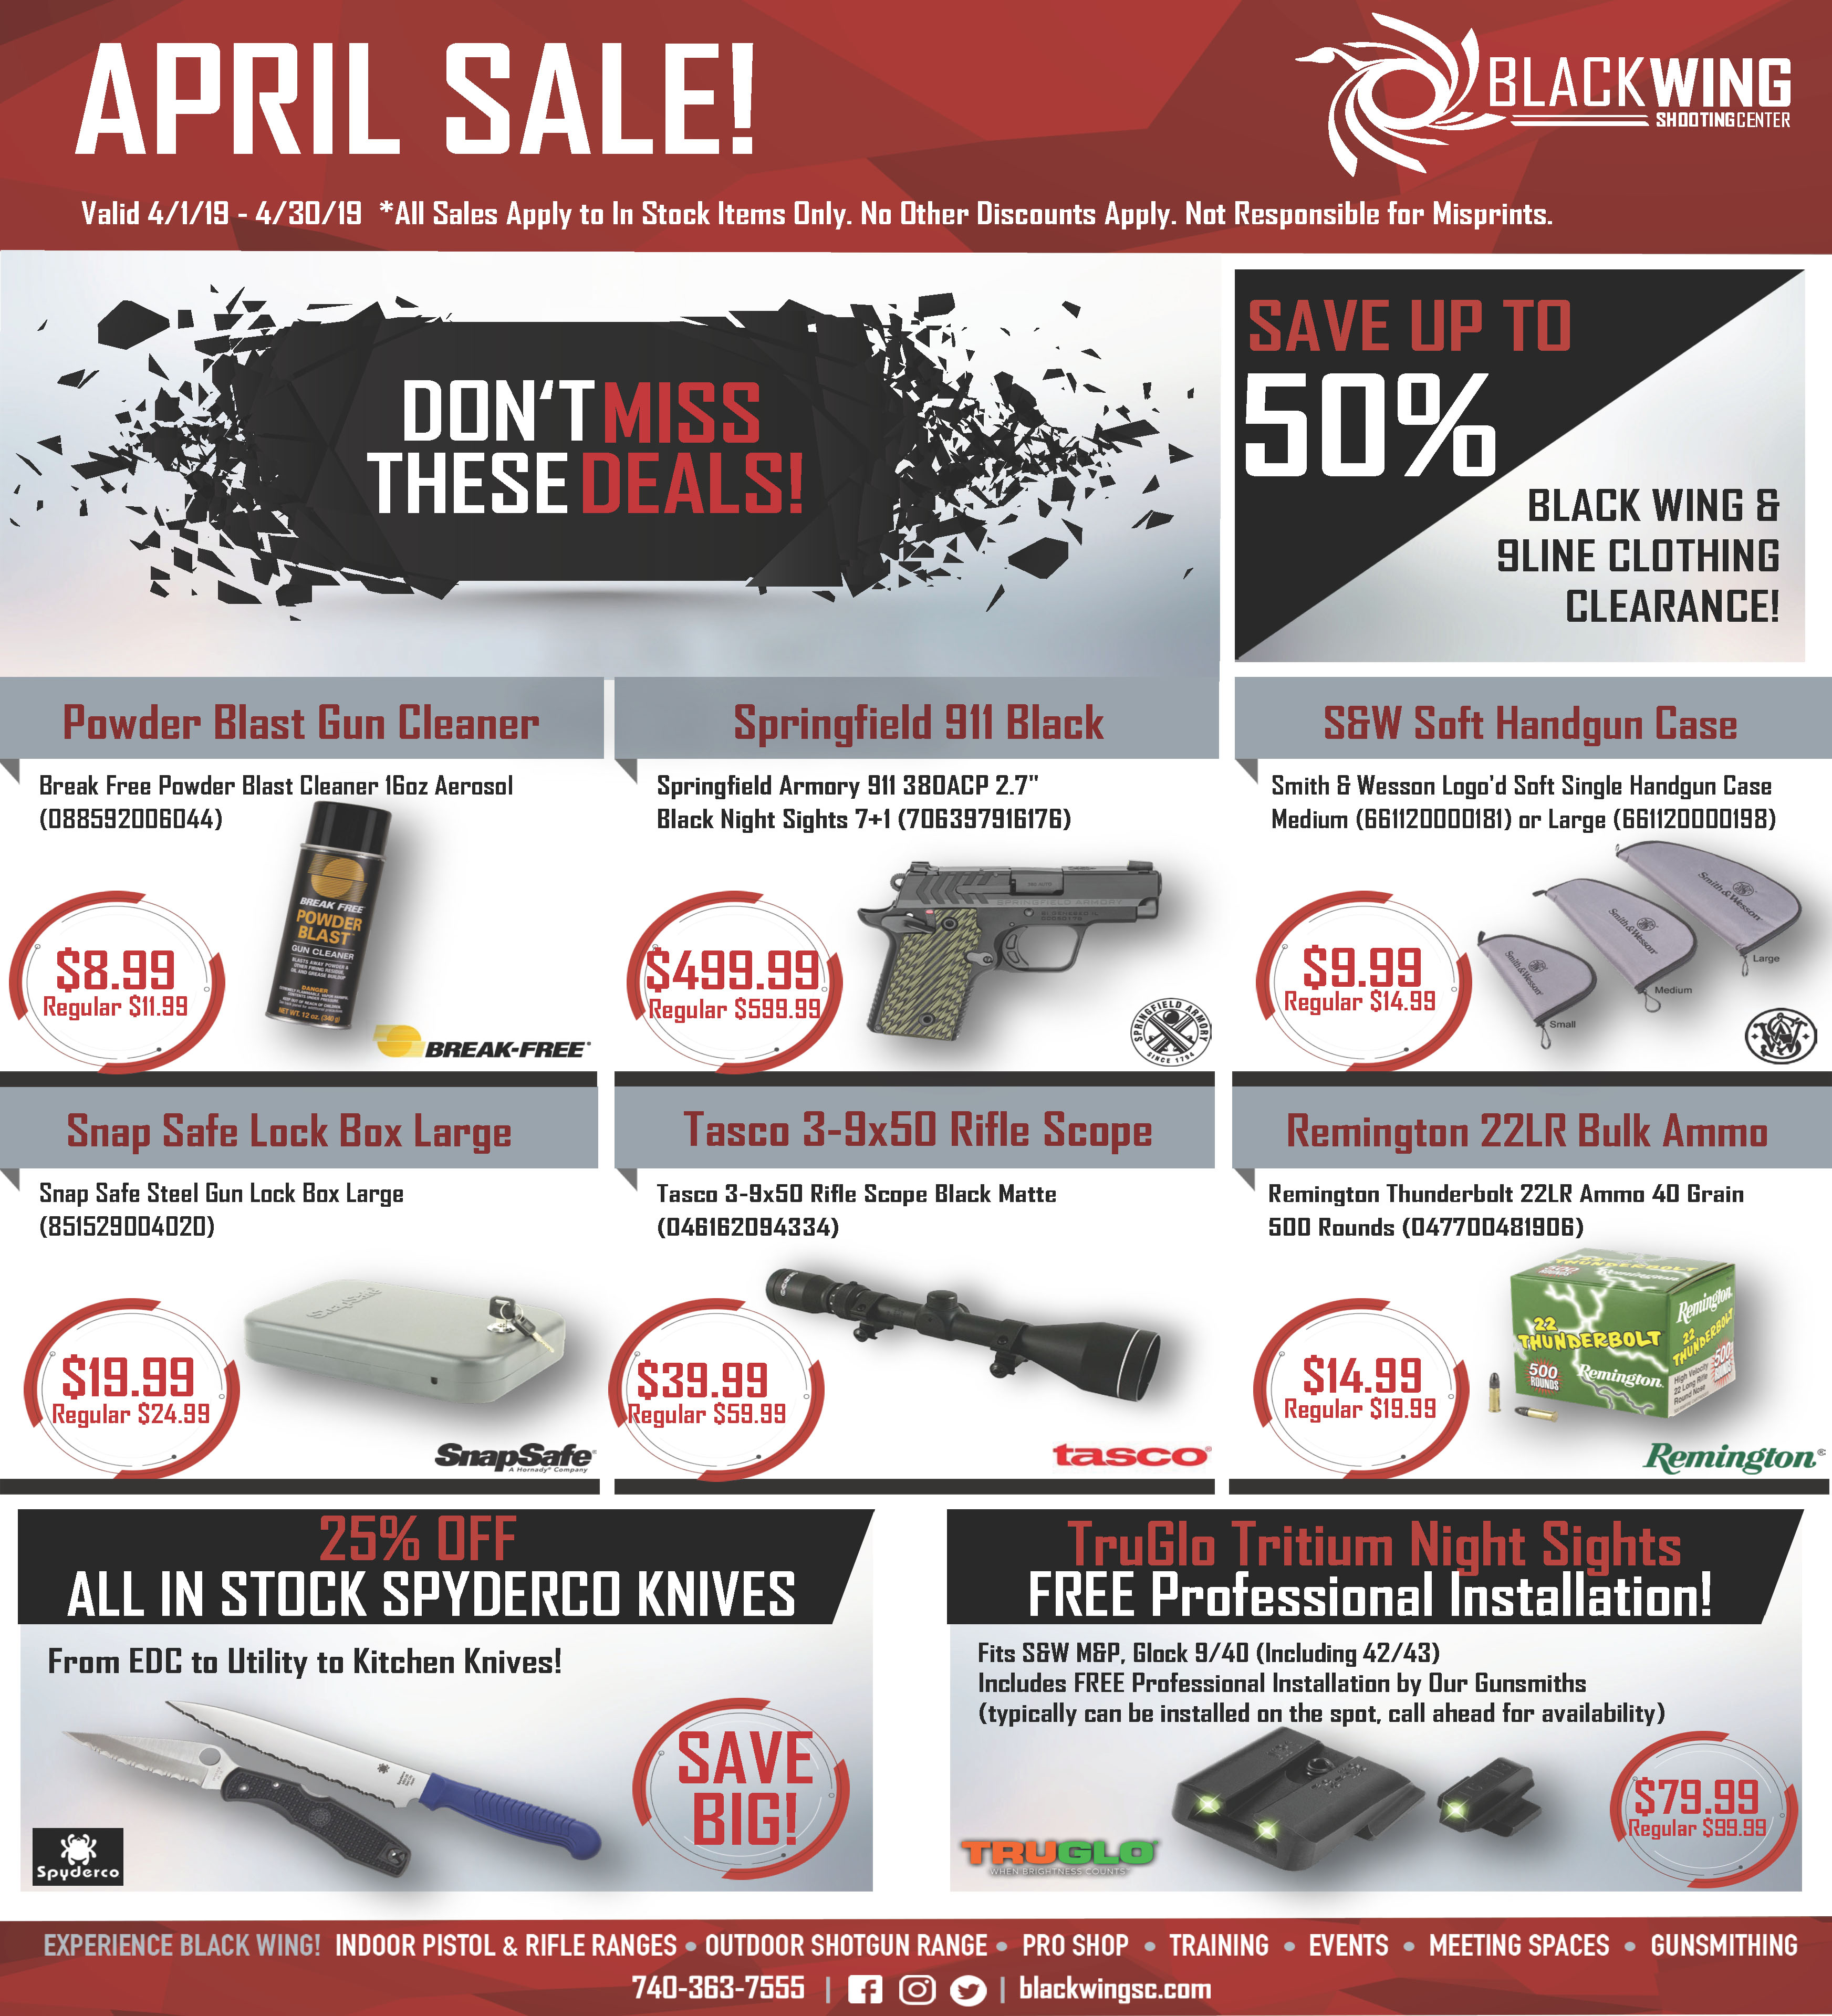 April Sales Current Specials